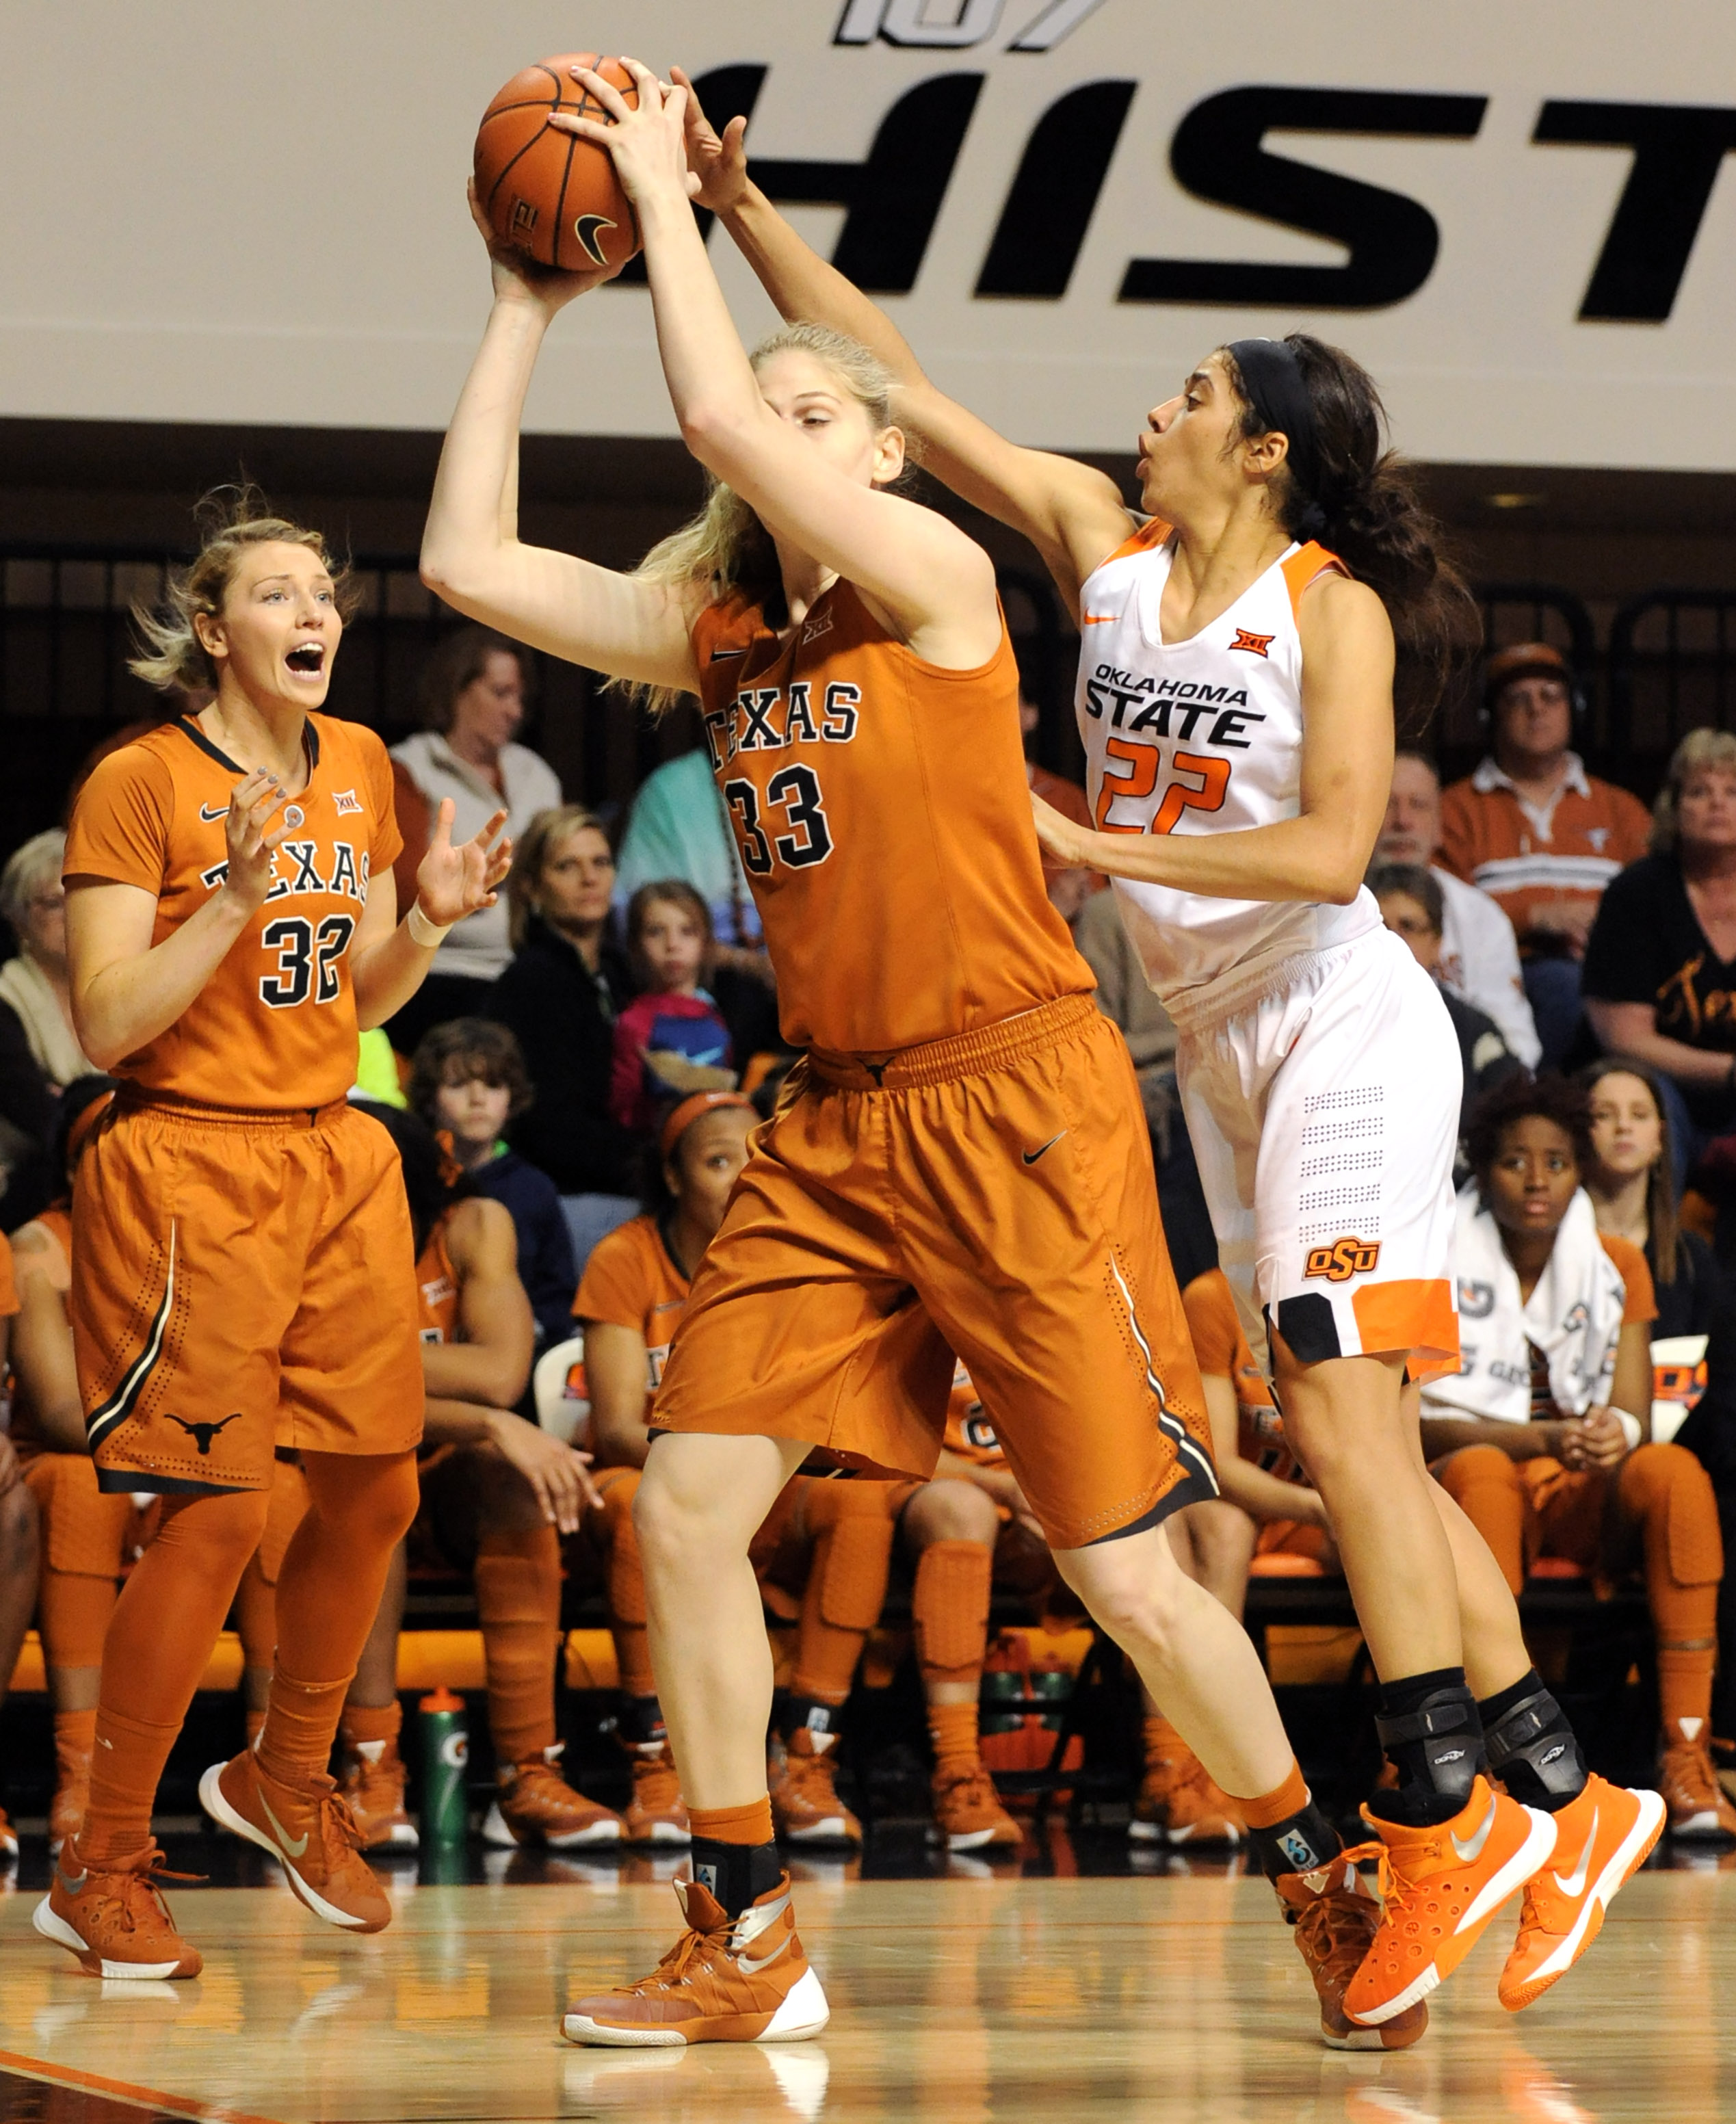 Texas guard Brady Sanders (32) reacts to Oklahoma State guard Brittney Martin (22) reaching over the back of Texas forward Sara Hattis (33) during the second half of an NCAA college basketball game in Stillwater, Okla., Saturday, Jan. 9, 2016. Martin had